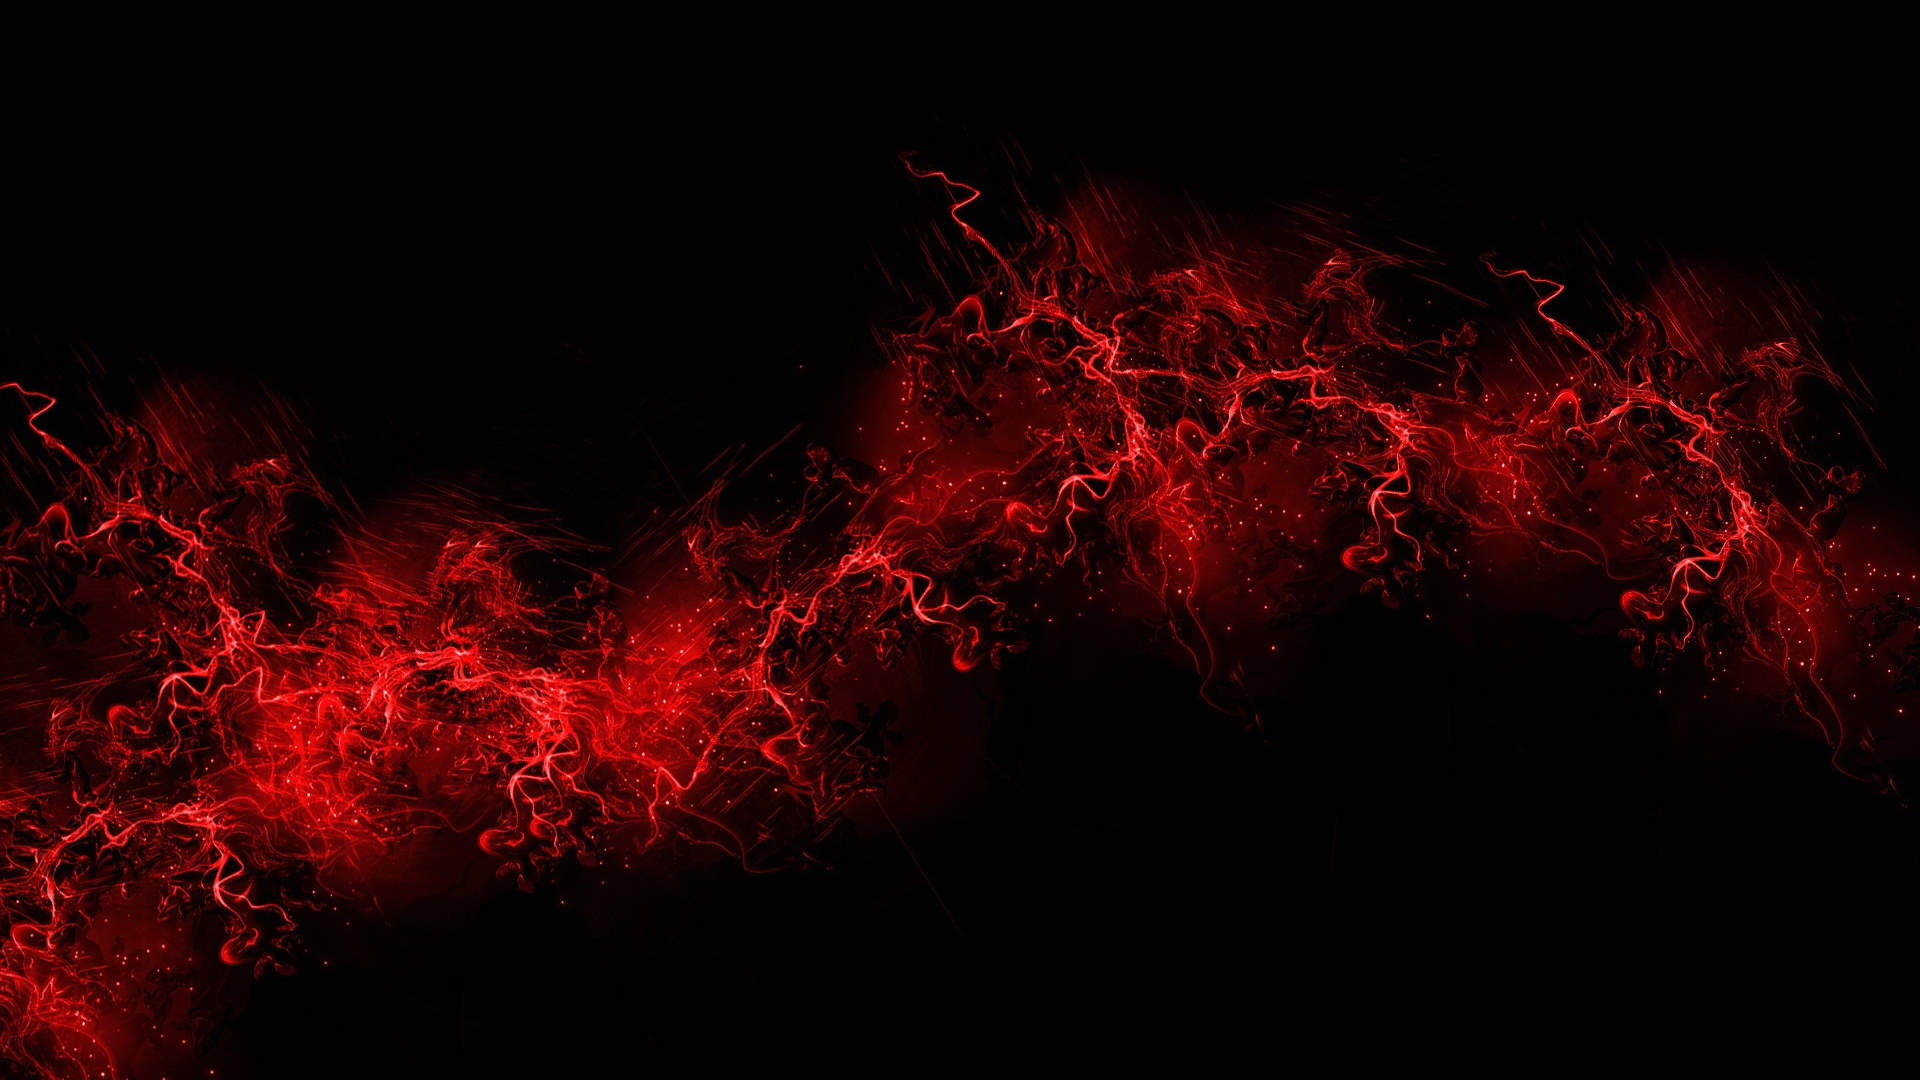 Red HD Wallpapers 1080p